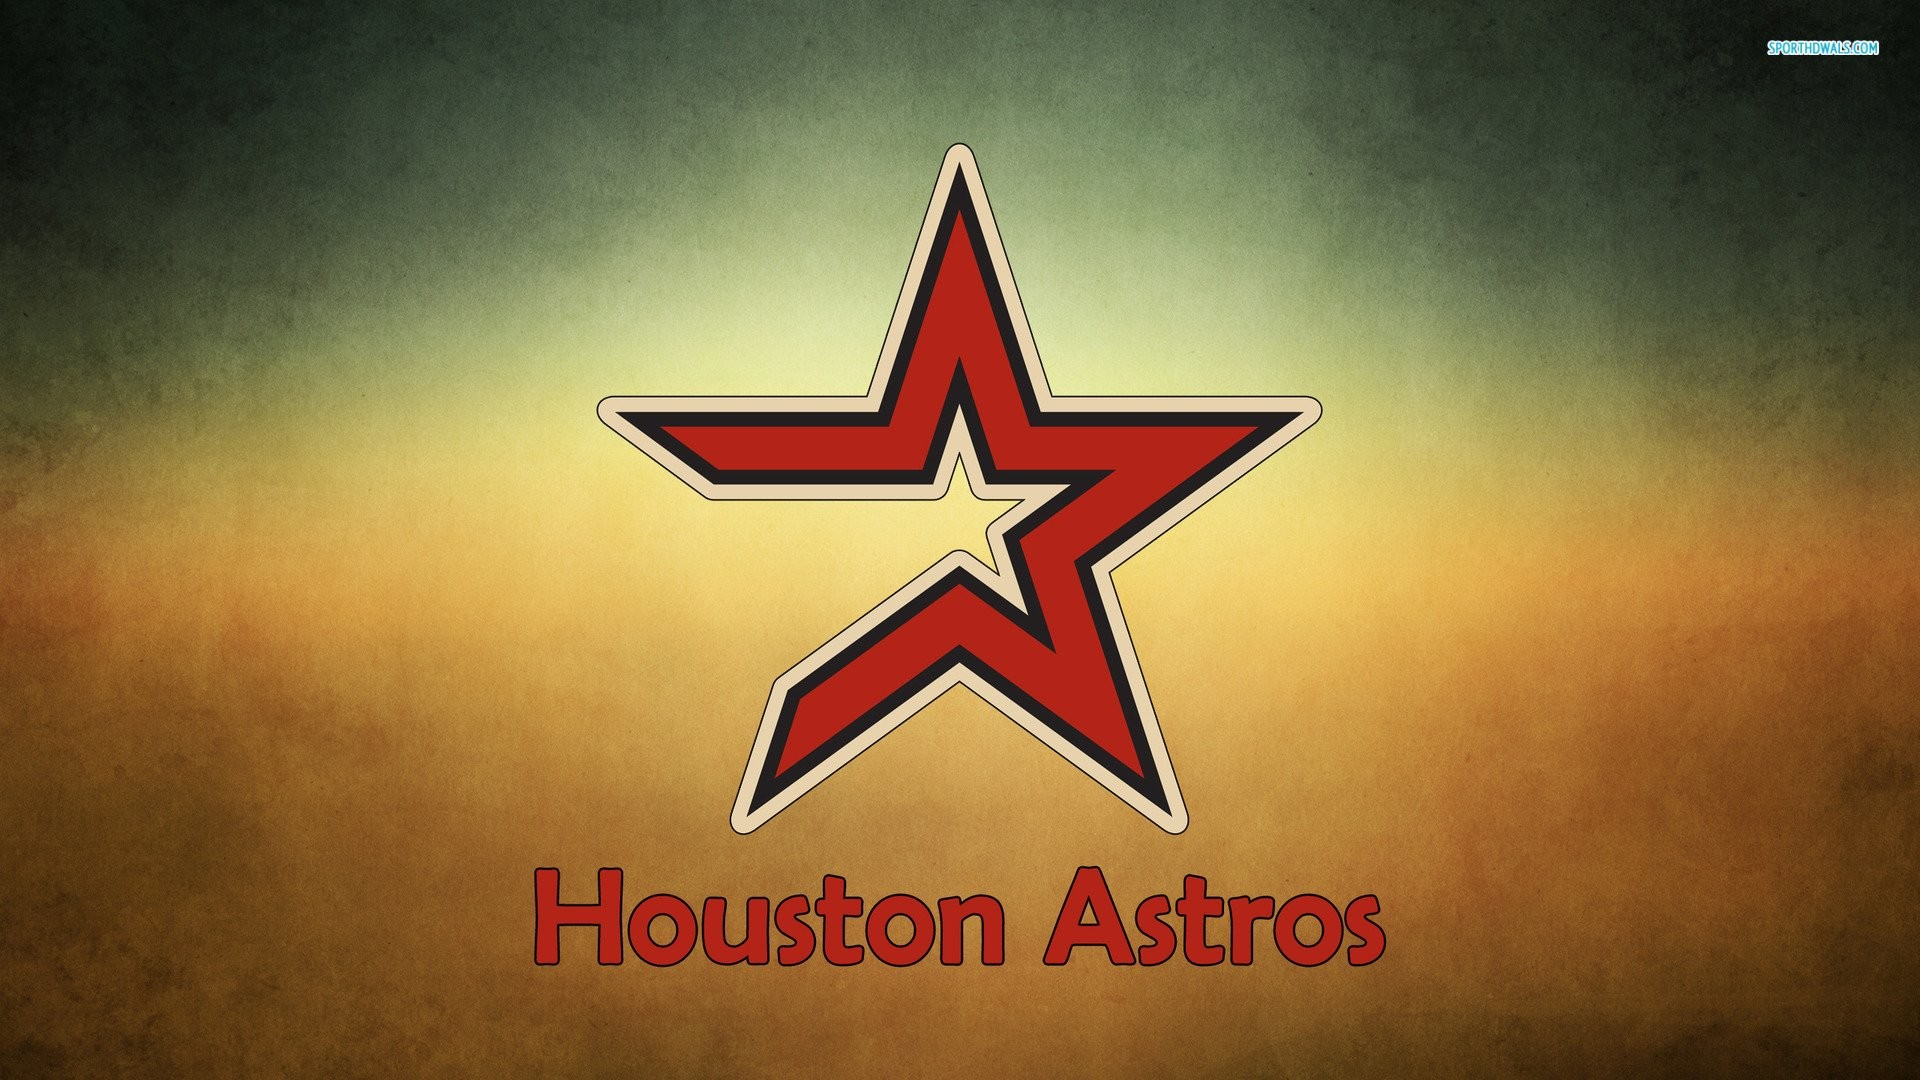 download houston astros wallpaper – photo #8. Tampa Bay Rays Schedule Rays